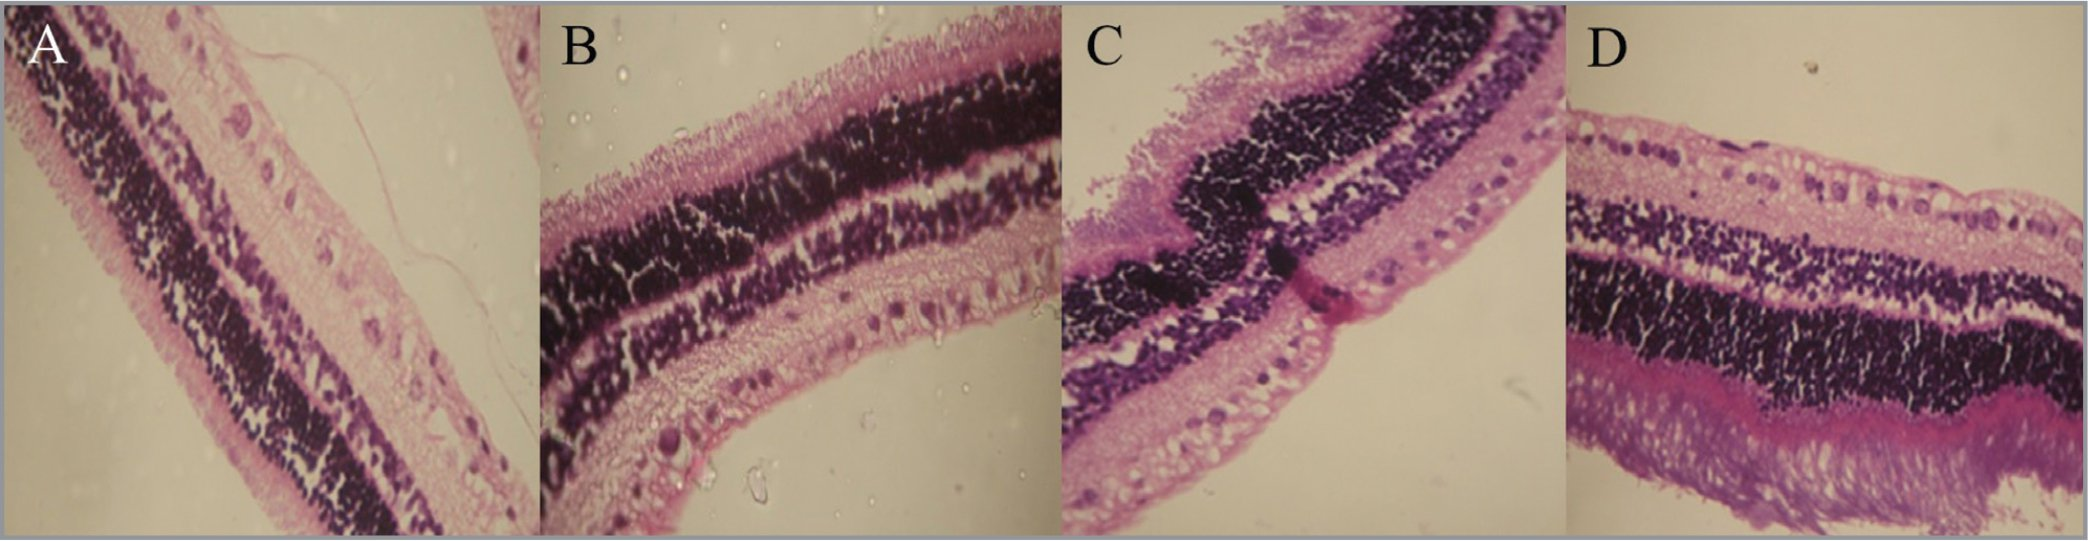 Light micrograph of 1.25 mg/mL intravitreal ziv-aflibercept-treated rabbit eye in (A) 1 day, (B) 7 days, (C) 14 days, and (D) 28 days. Micrographs show retinal cellular integrity and nuclei were prominent. No necrosis or atrophy were seen.